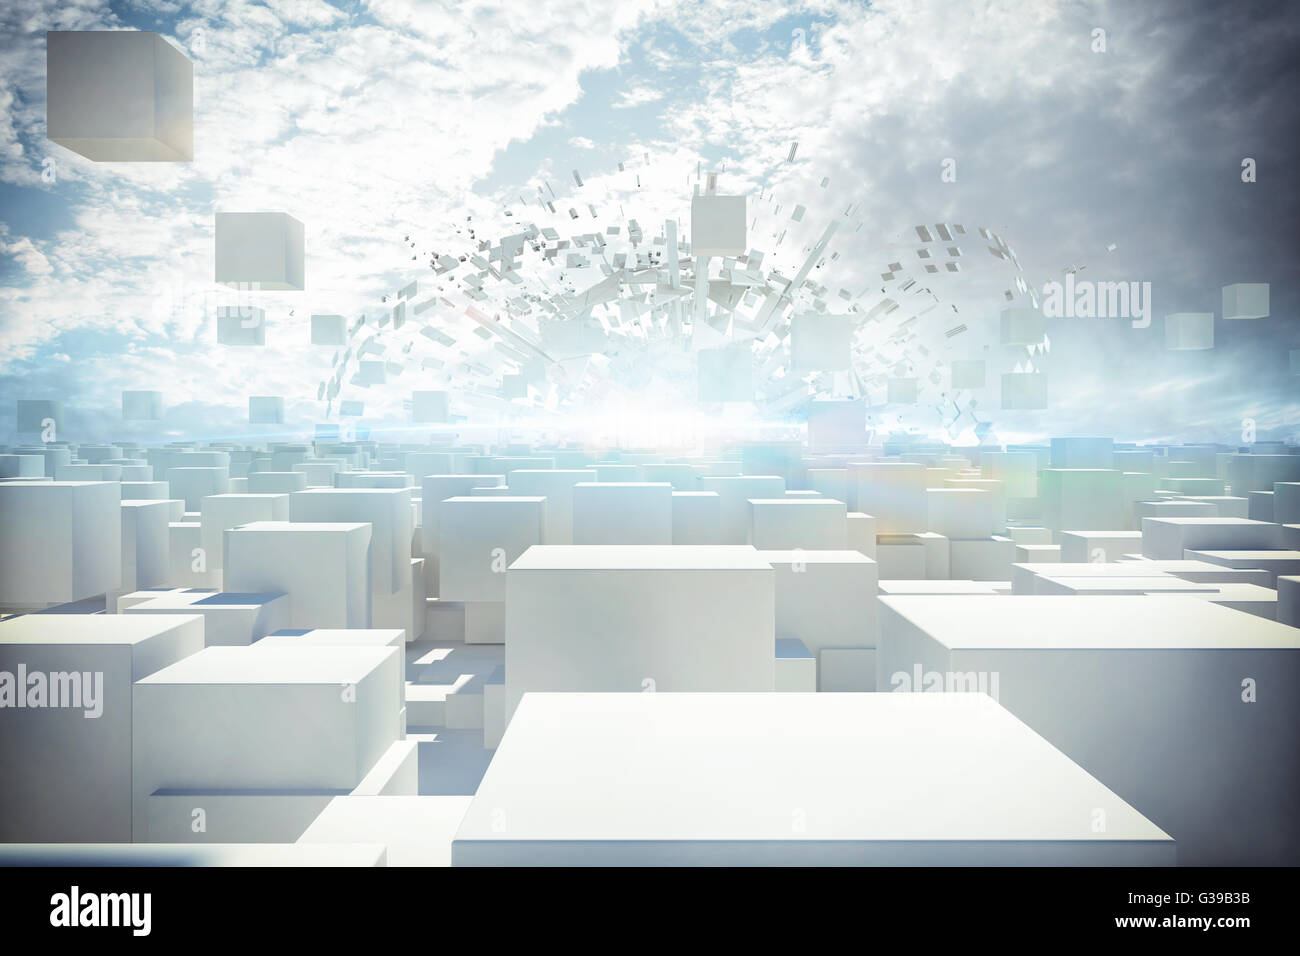 Futuristic city 3d rendering - Stock Image